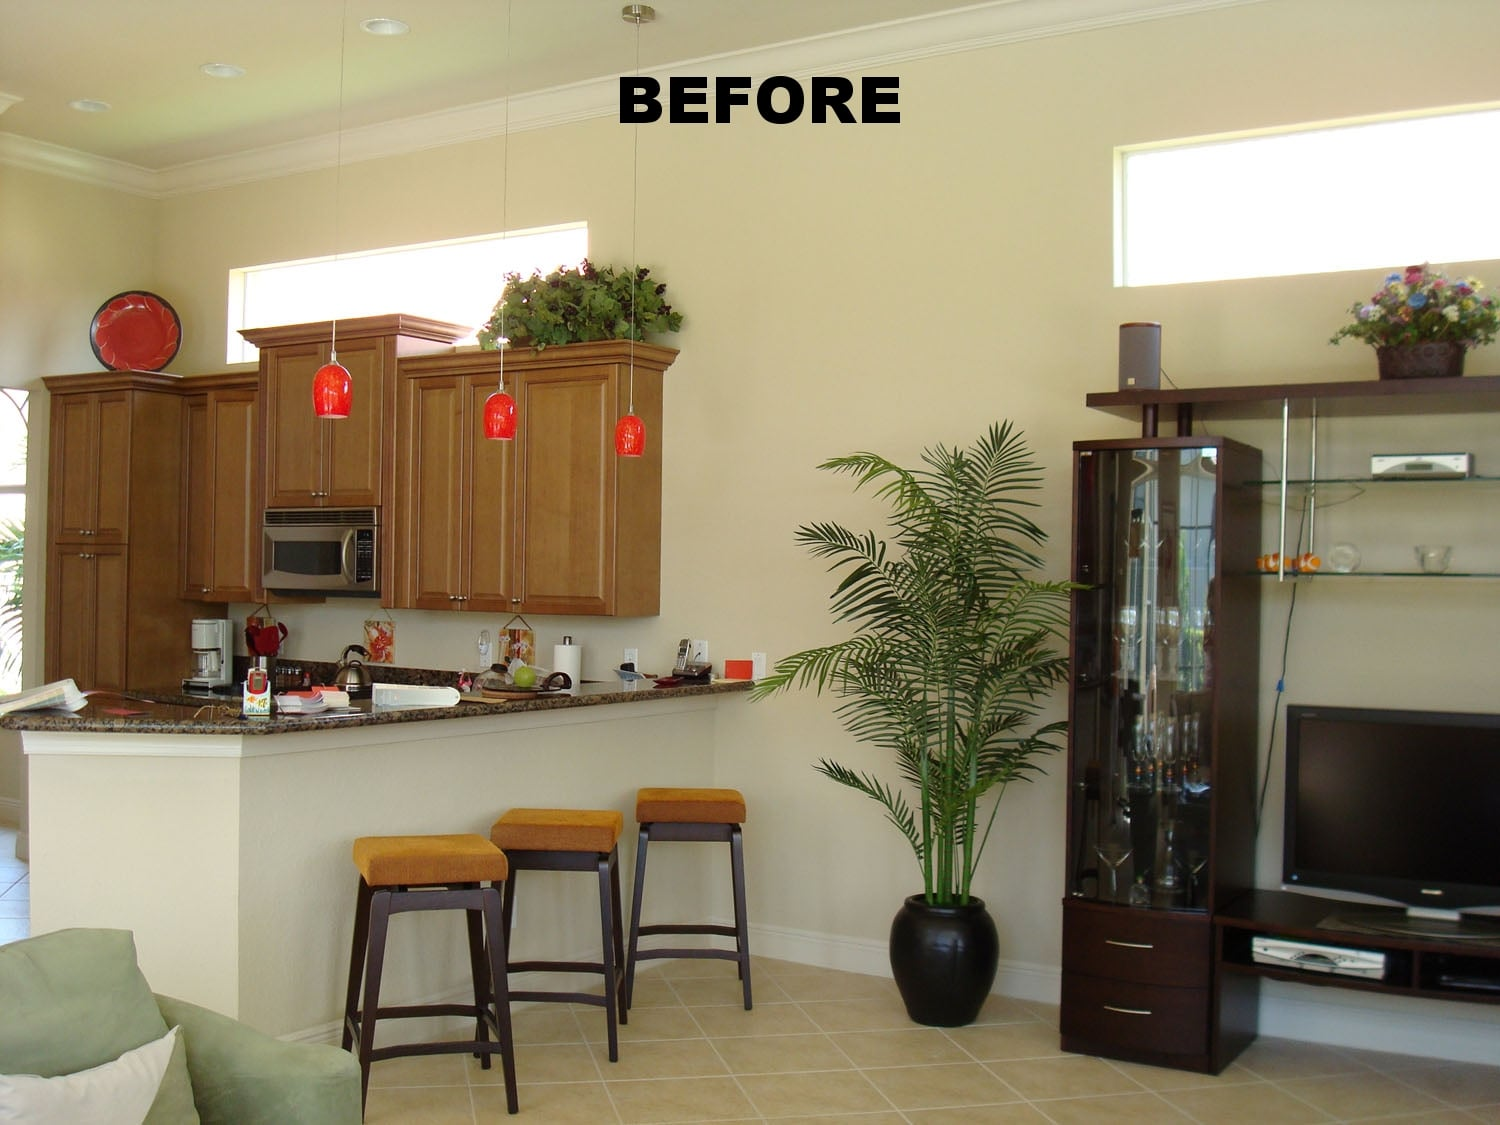 1-Pop-of-color-home-makeover-project-before-1500px.jpg